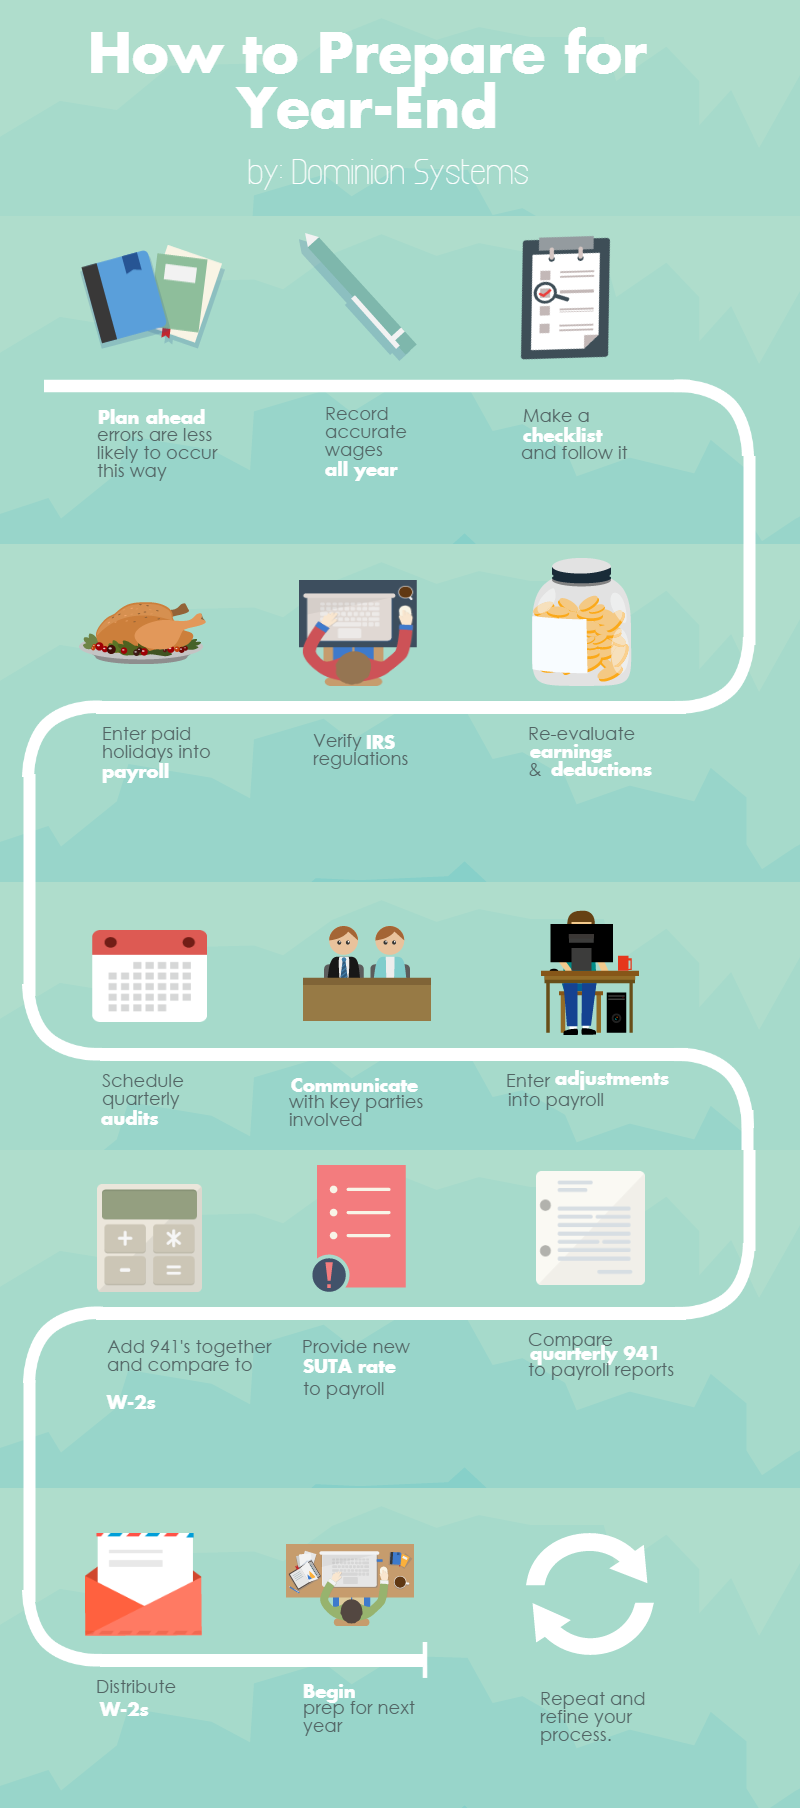 How to Prepare for Year-End Infographic